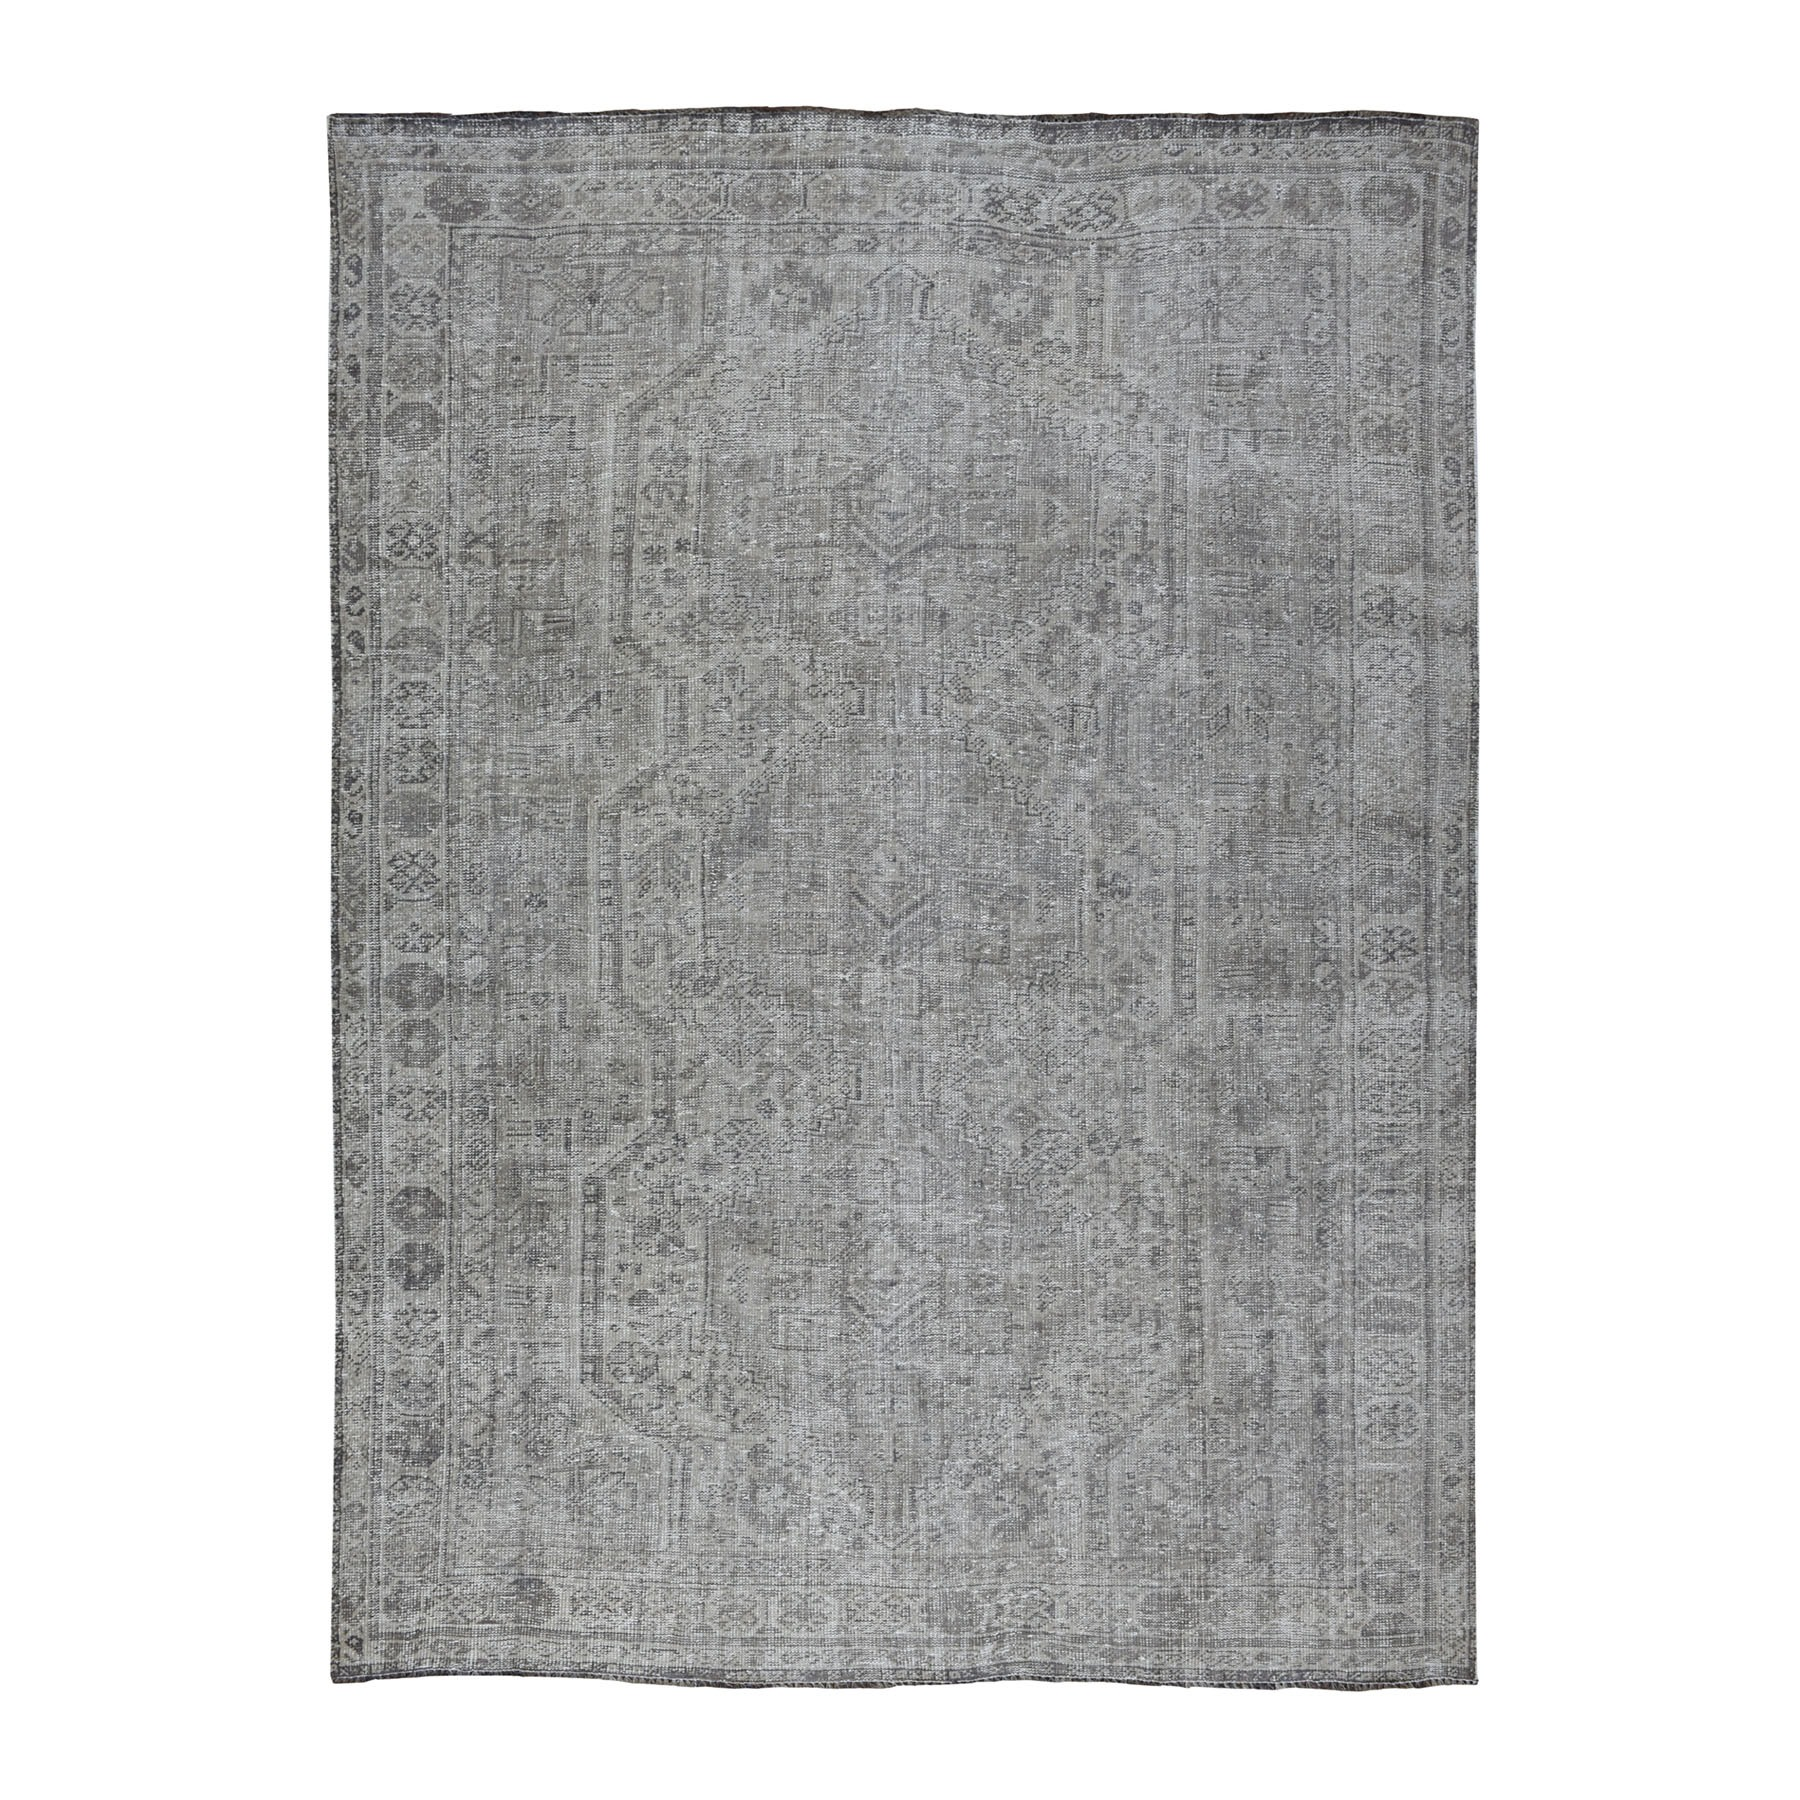 Fetneh Collection And Vintage Overdyed Collection Hand Knotted Grey Rug No: 01108068